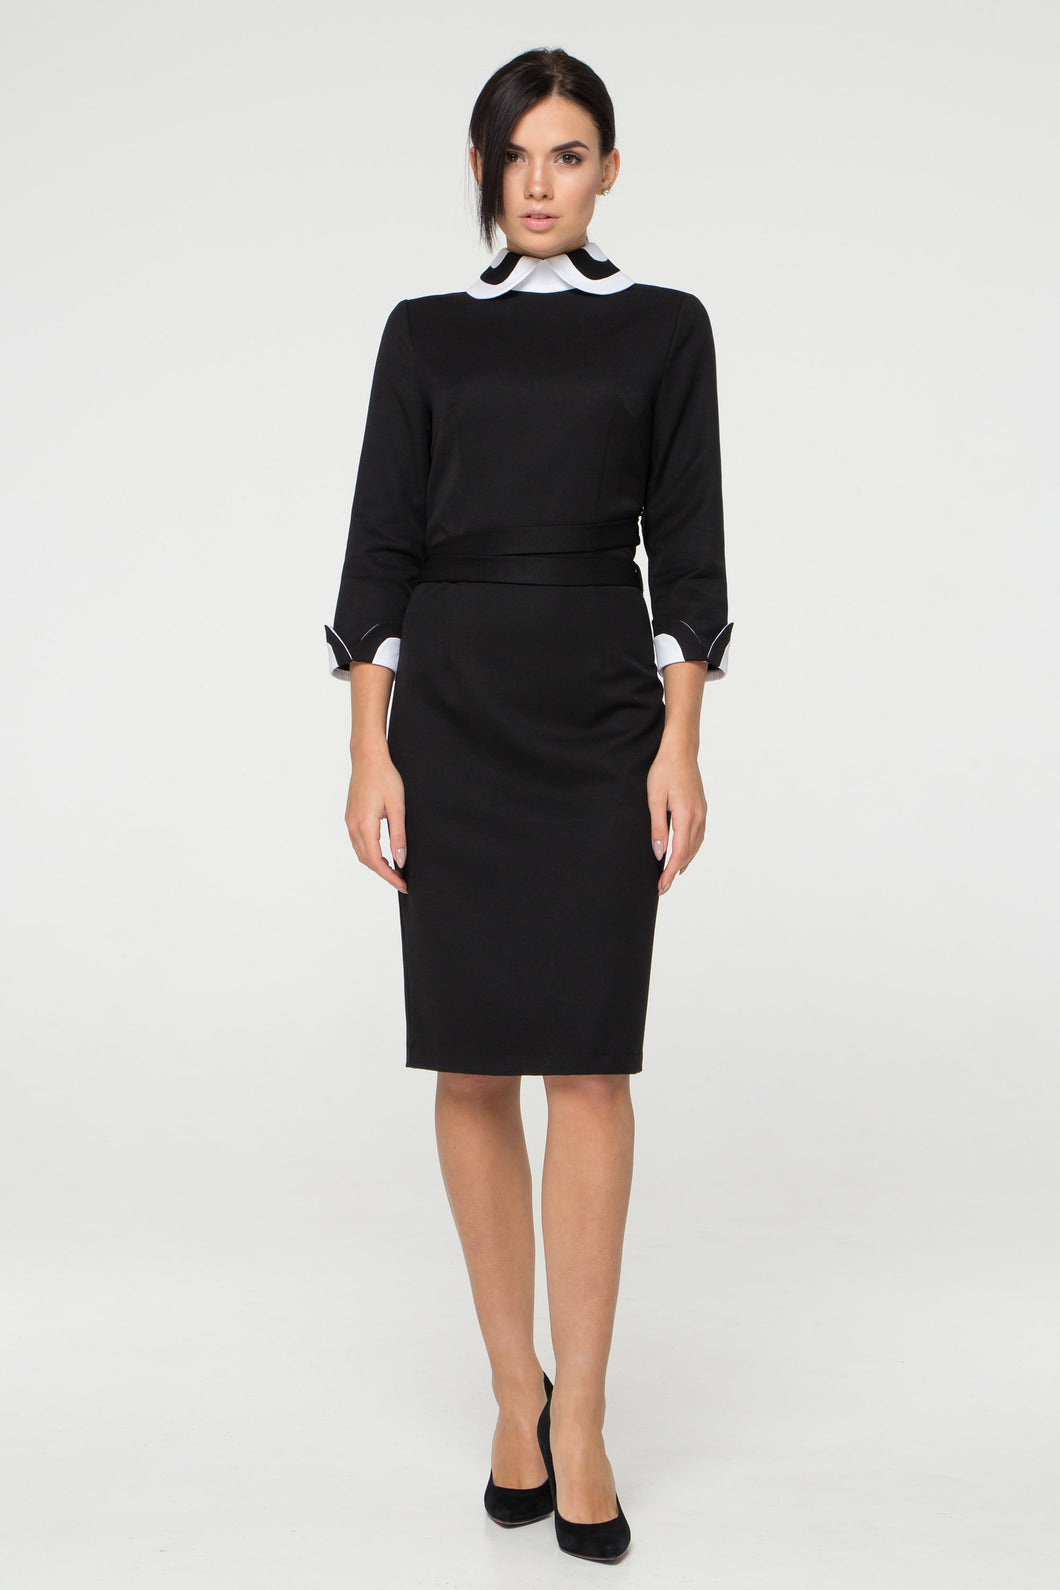 White peter pan collar black pencil dress